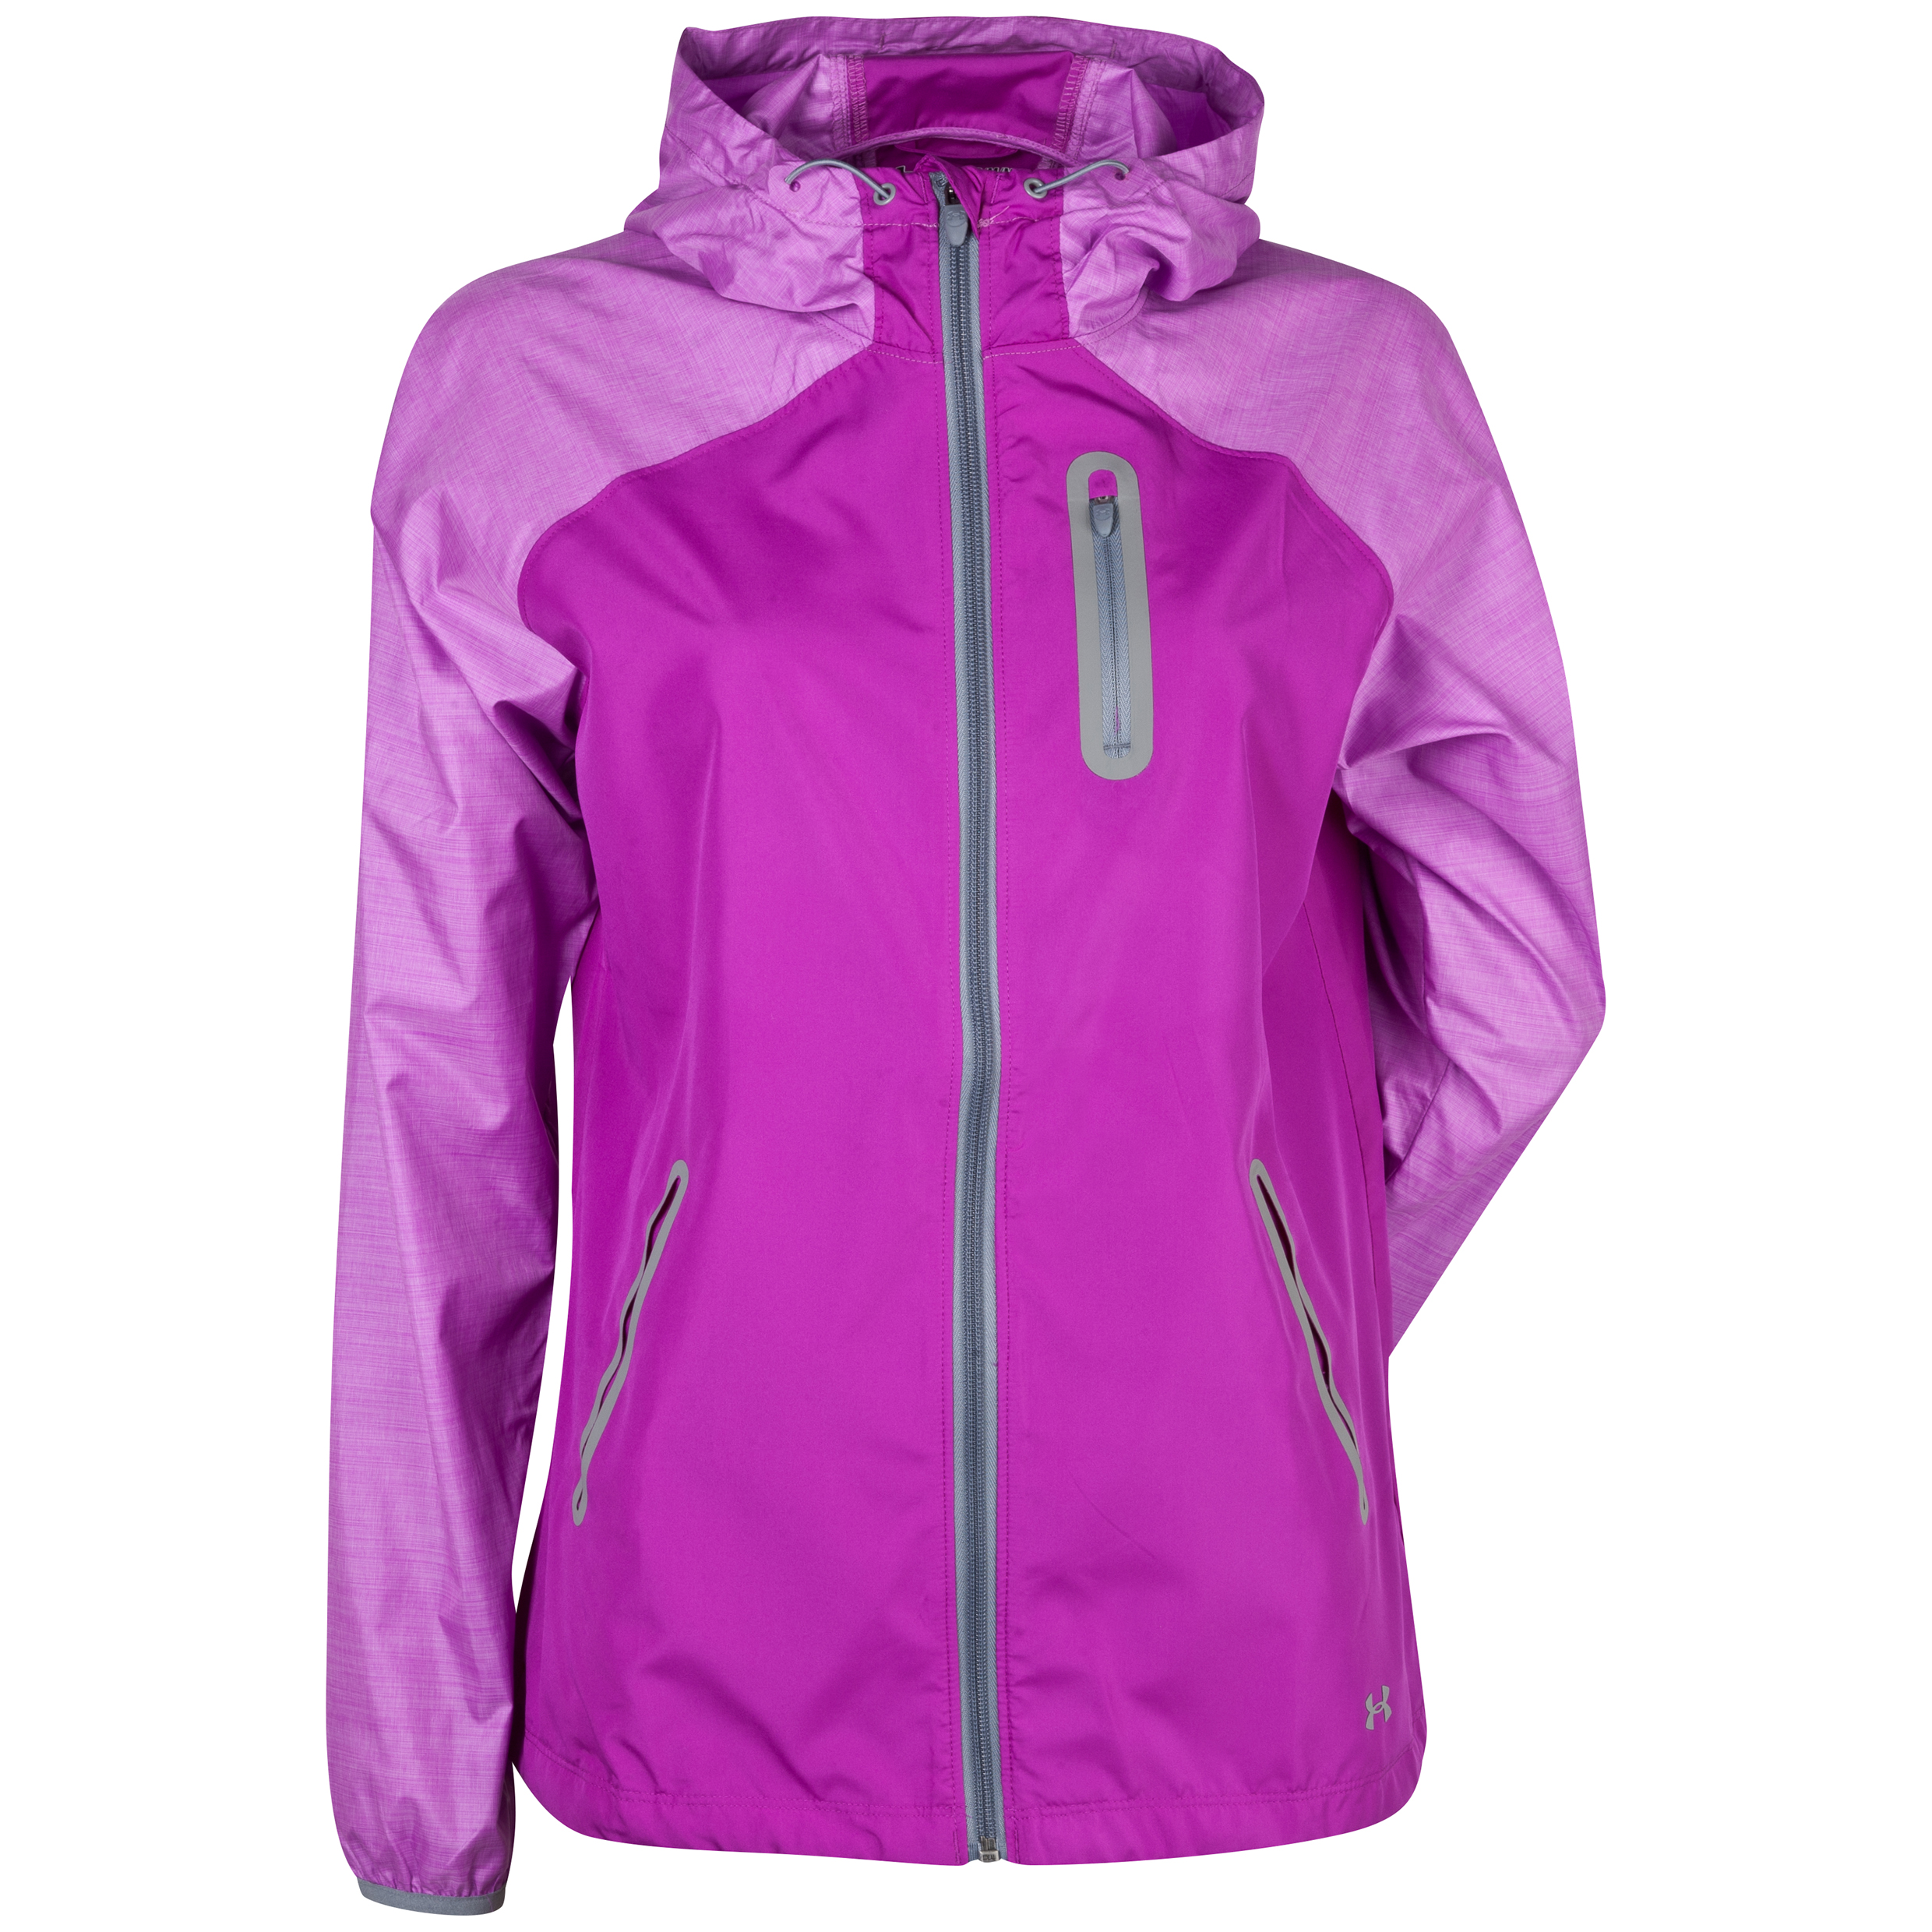 Running Under Armour Qualifier Woven Jacket - Purple - Womens Purple